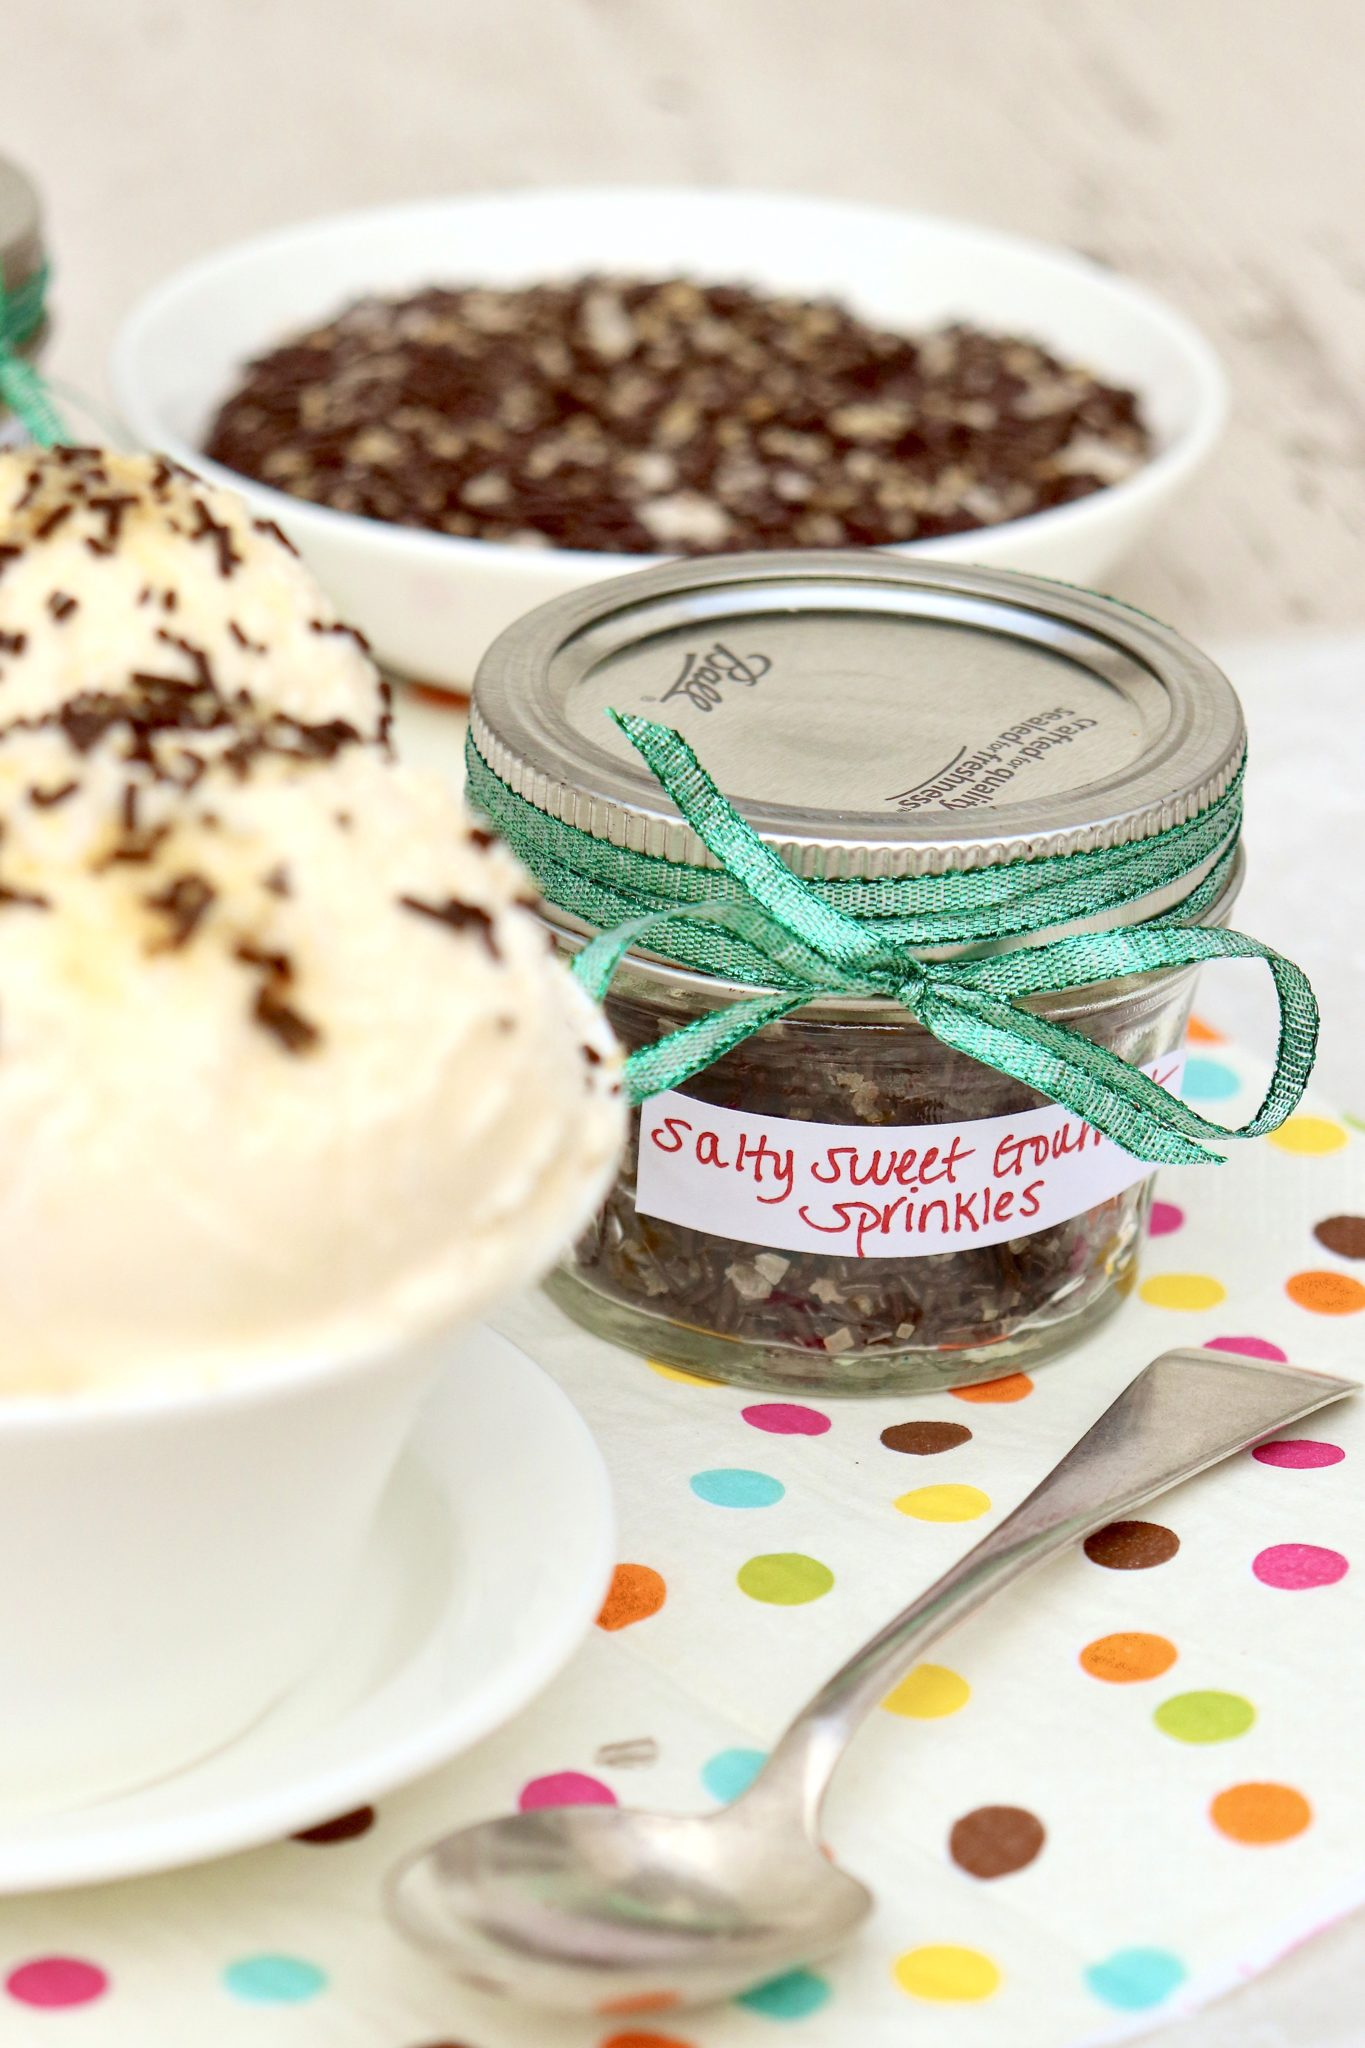 Sprinkles are no longer just for kids thanks to this salty-sweet upgrade! Perfect for gift giving and use on ice cream, hot cocoa, lattes, cookies and more.